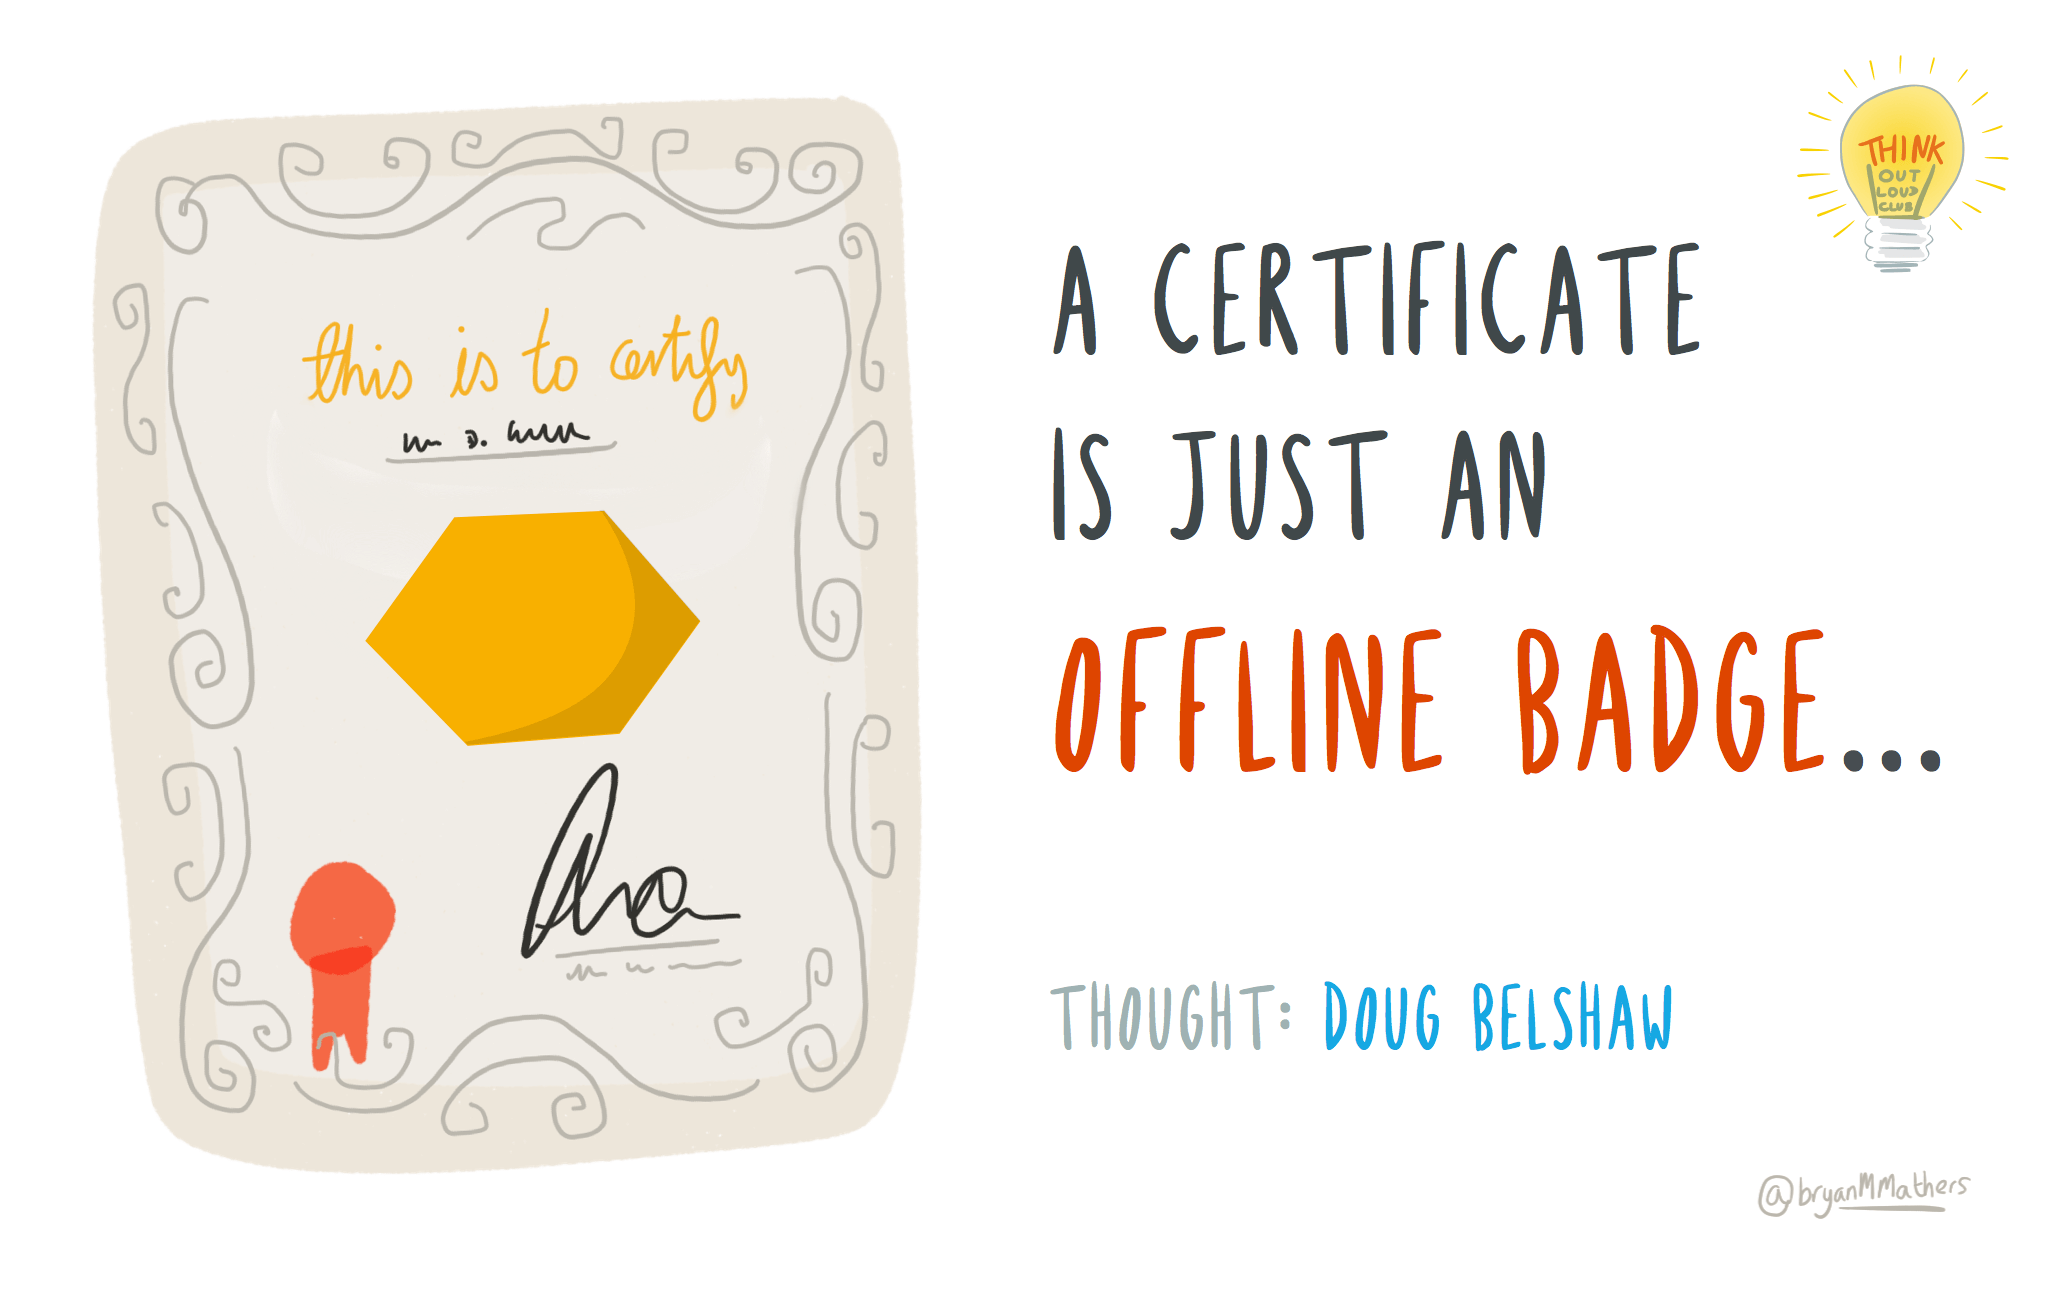 A certificate is just an offline badge